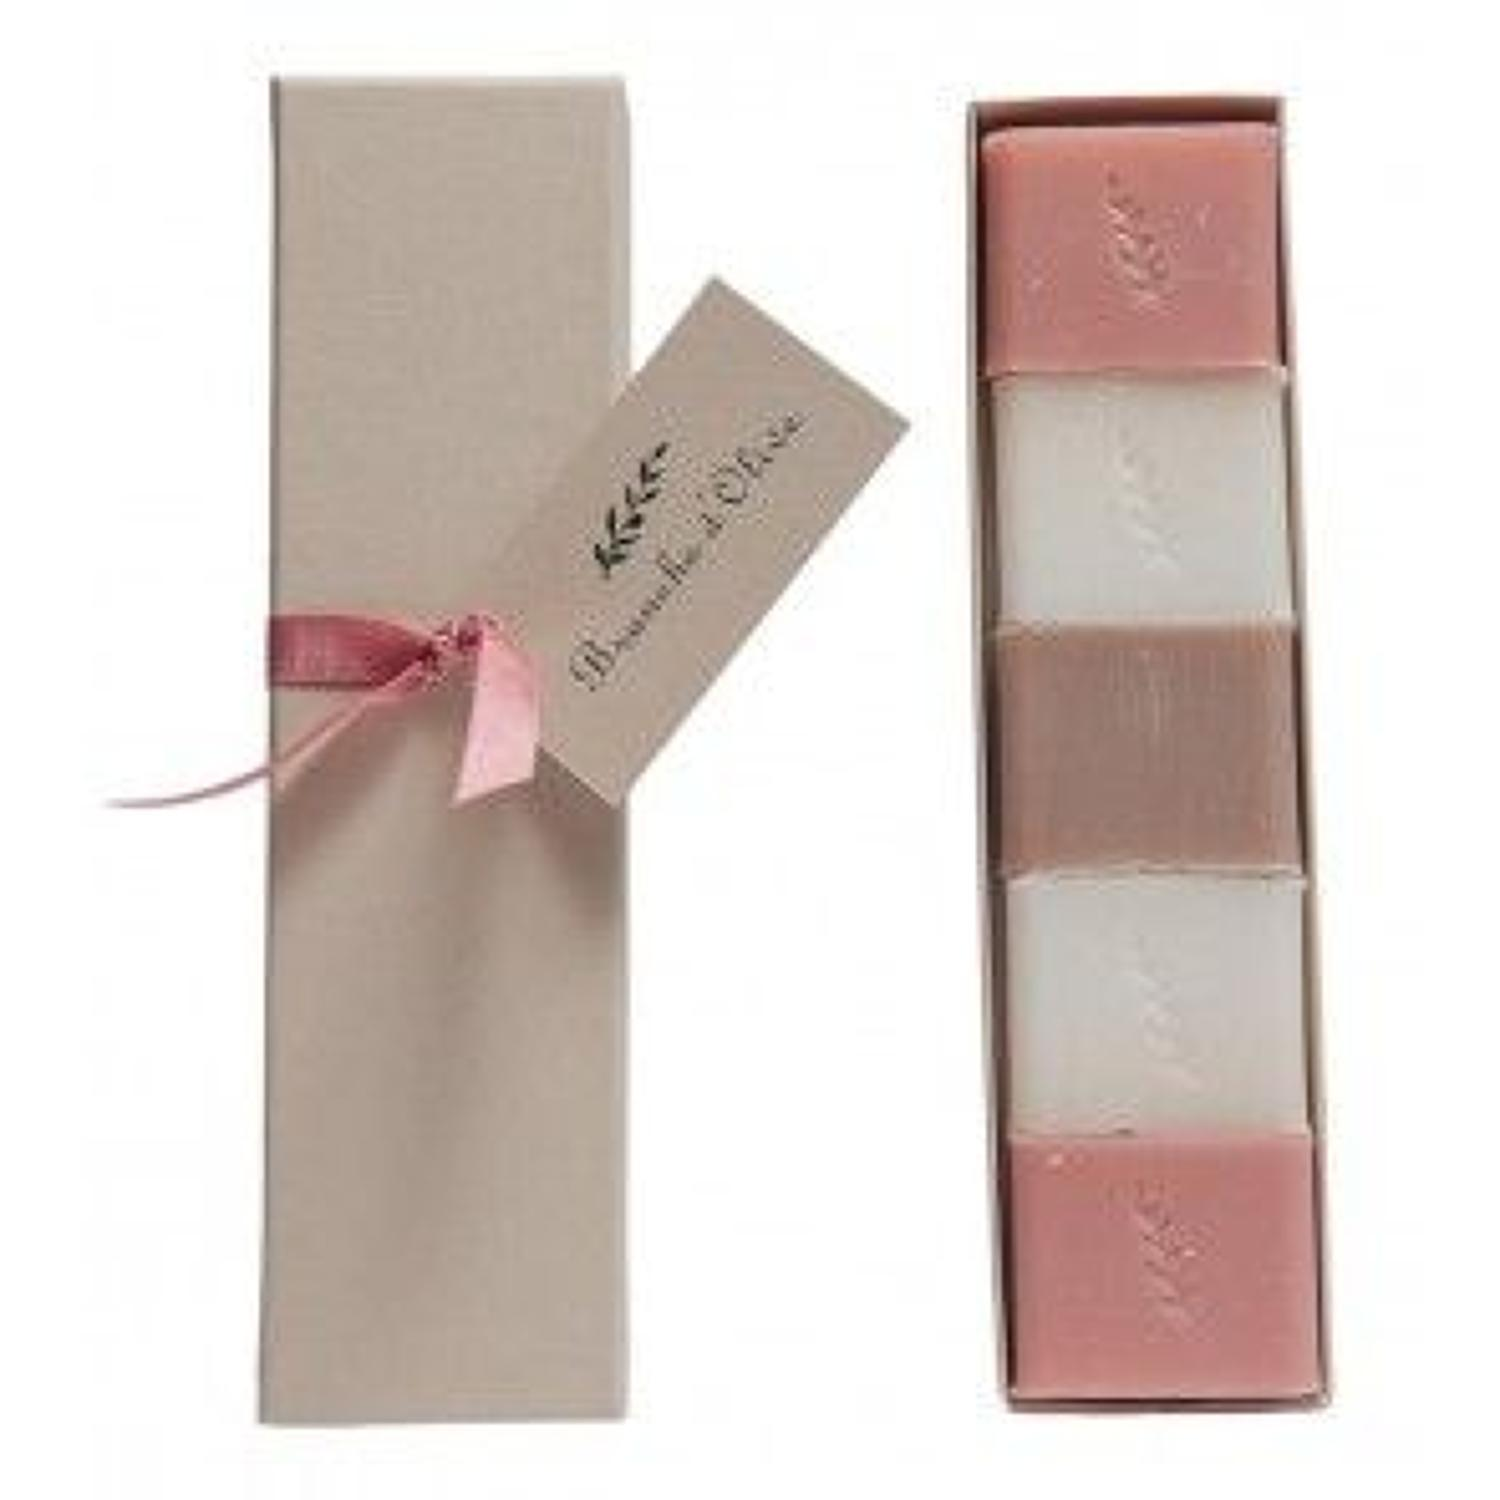 Branche de olive - Boxed guest soap - Rose